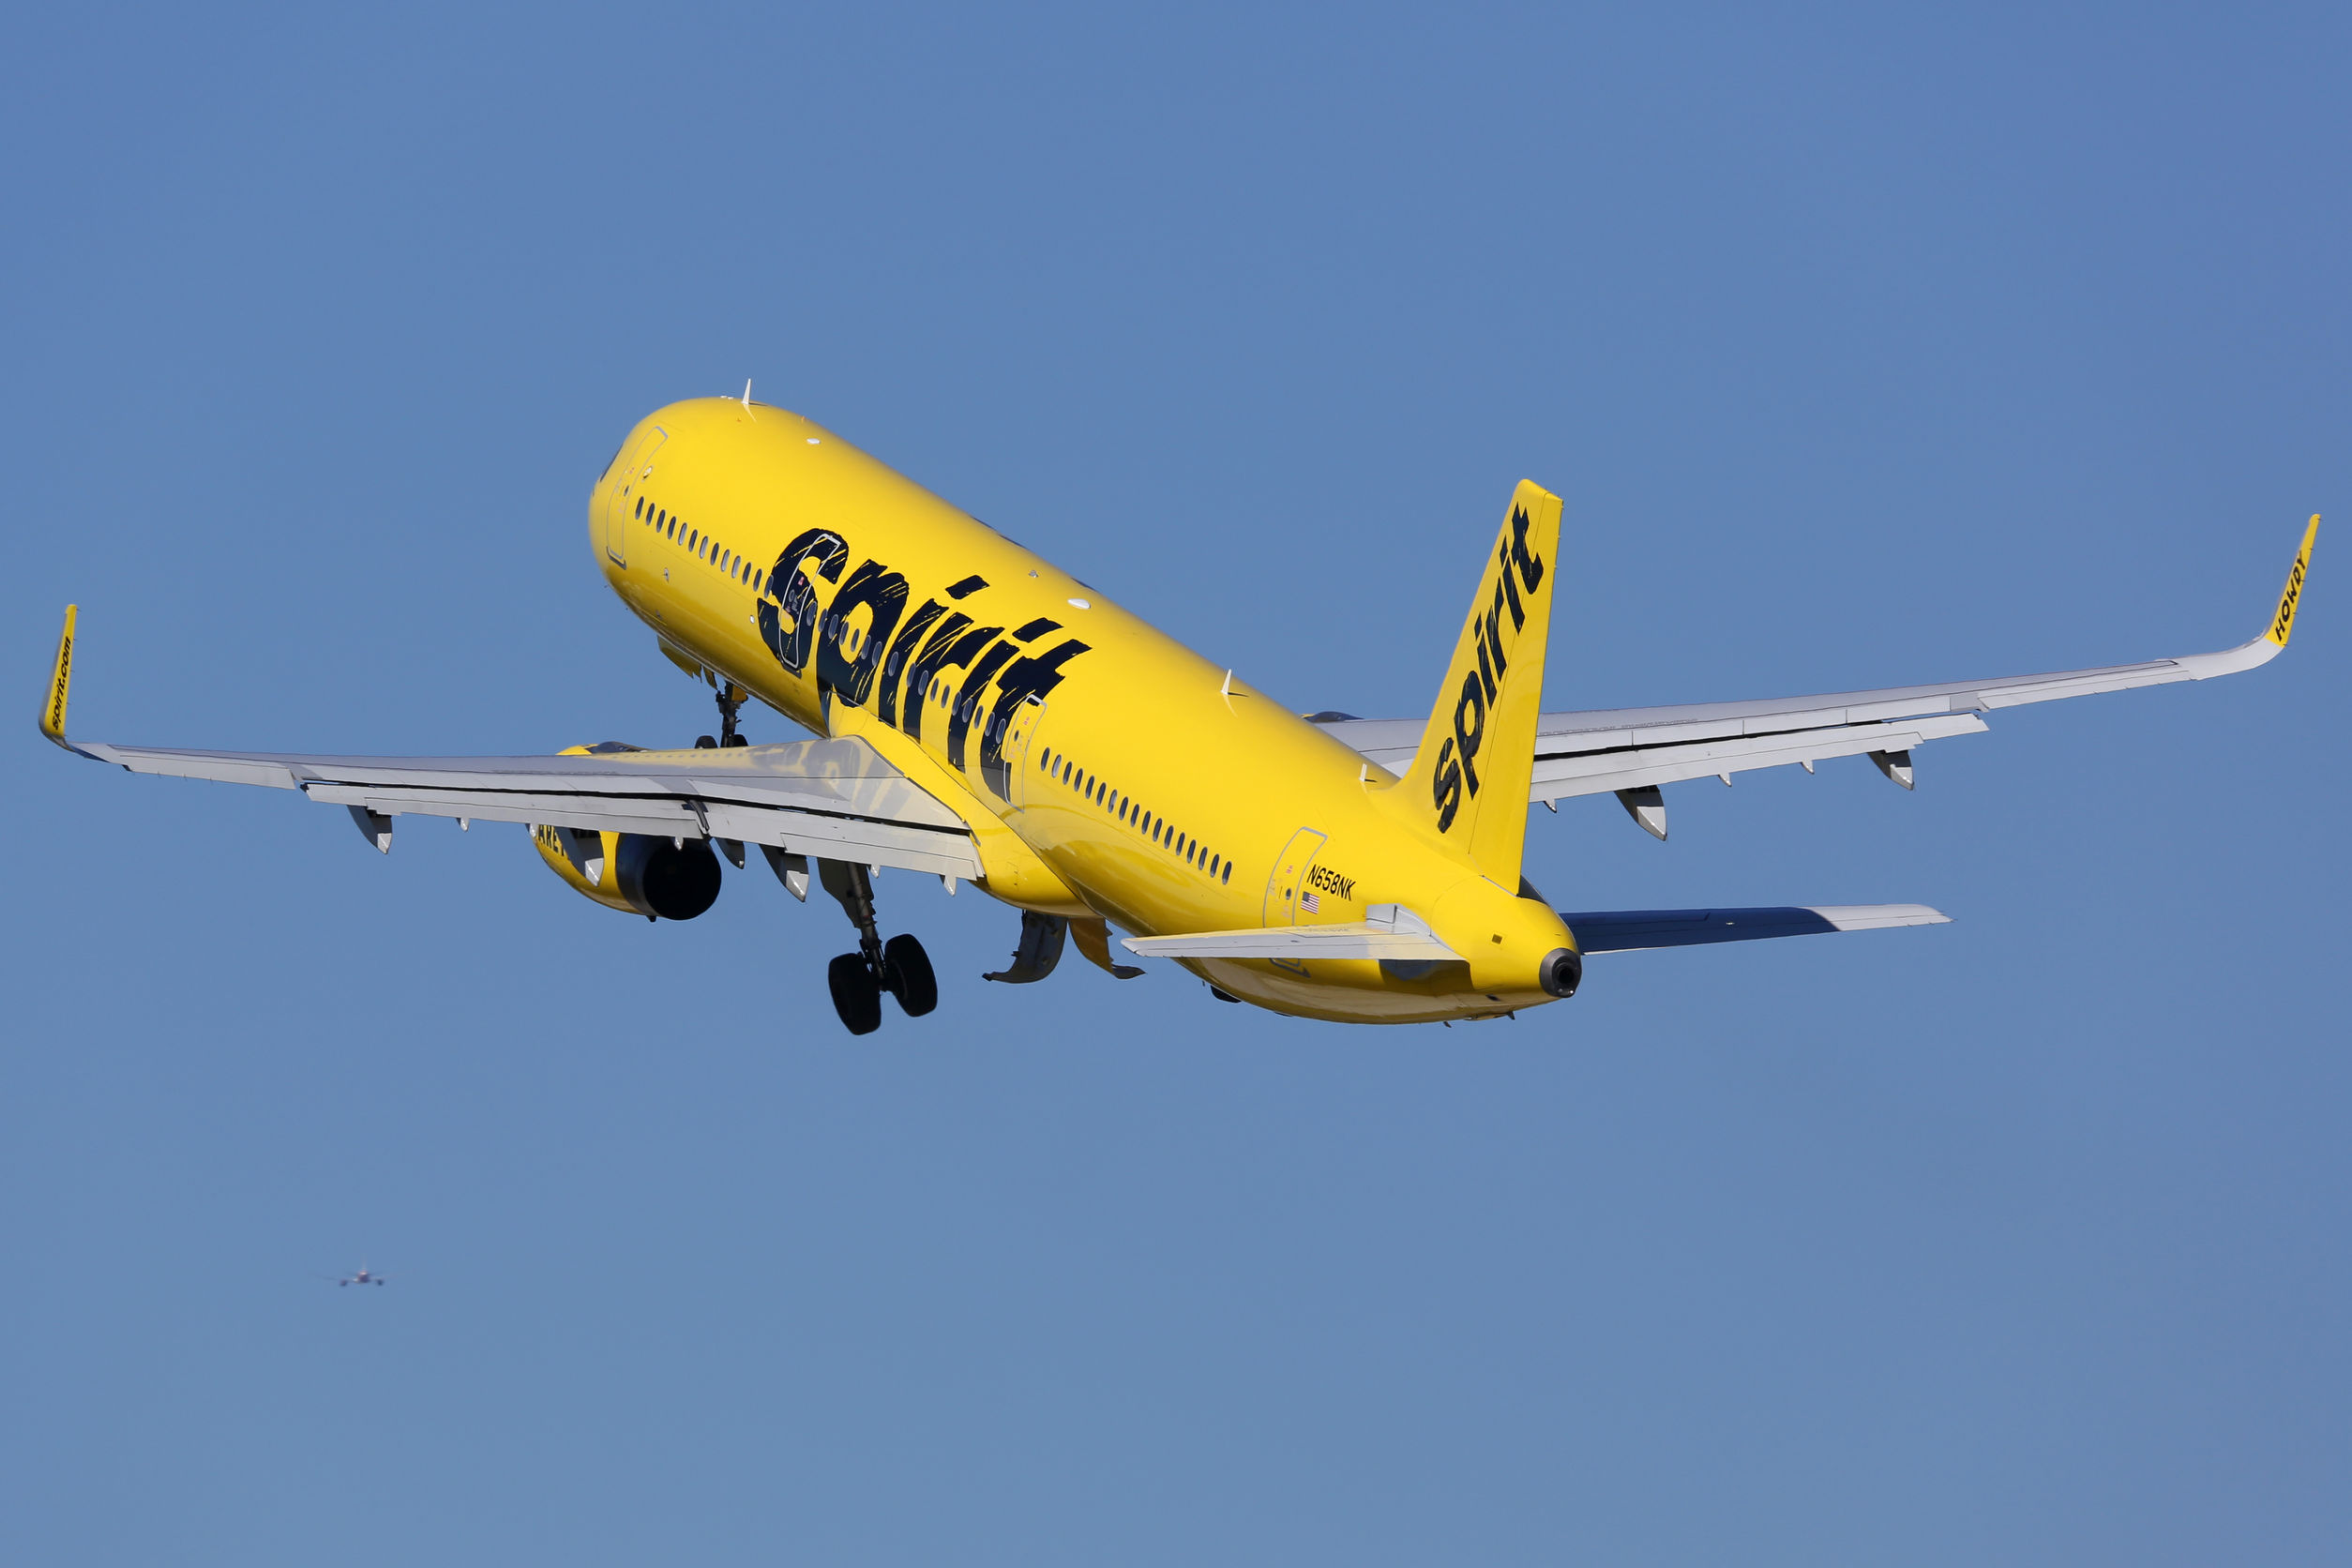 Find Spirit Airlines domestic flights available for all of your favorite United States destinations, from small towns, to the big cities, Spirit Airlines can get you there. Convenient flight schedules make it effortless to get where you need to go and arrive on time, all at the right price.